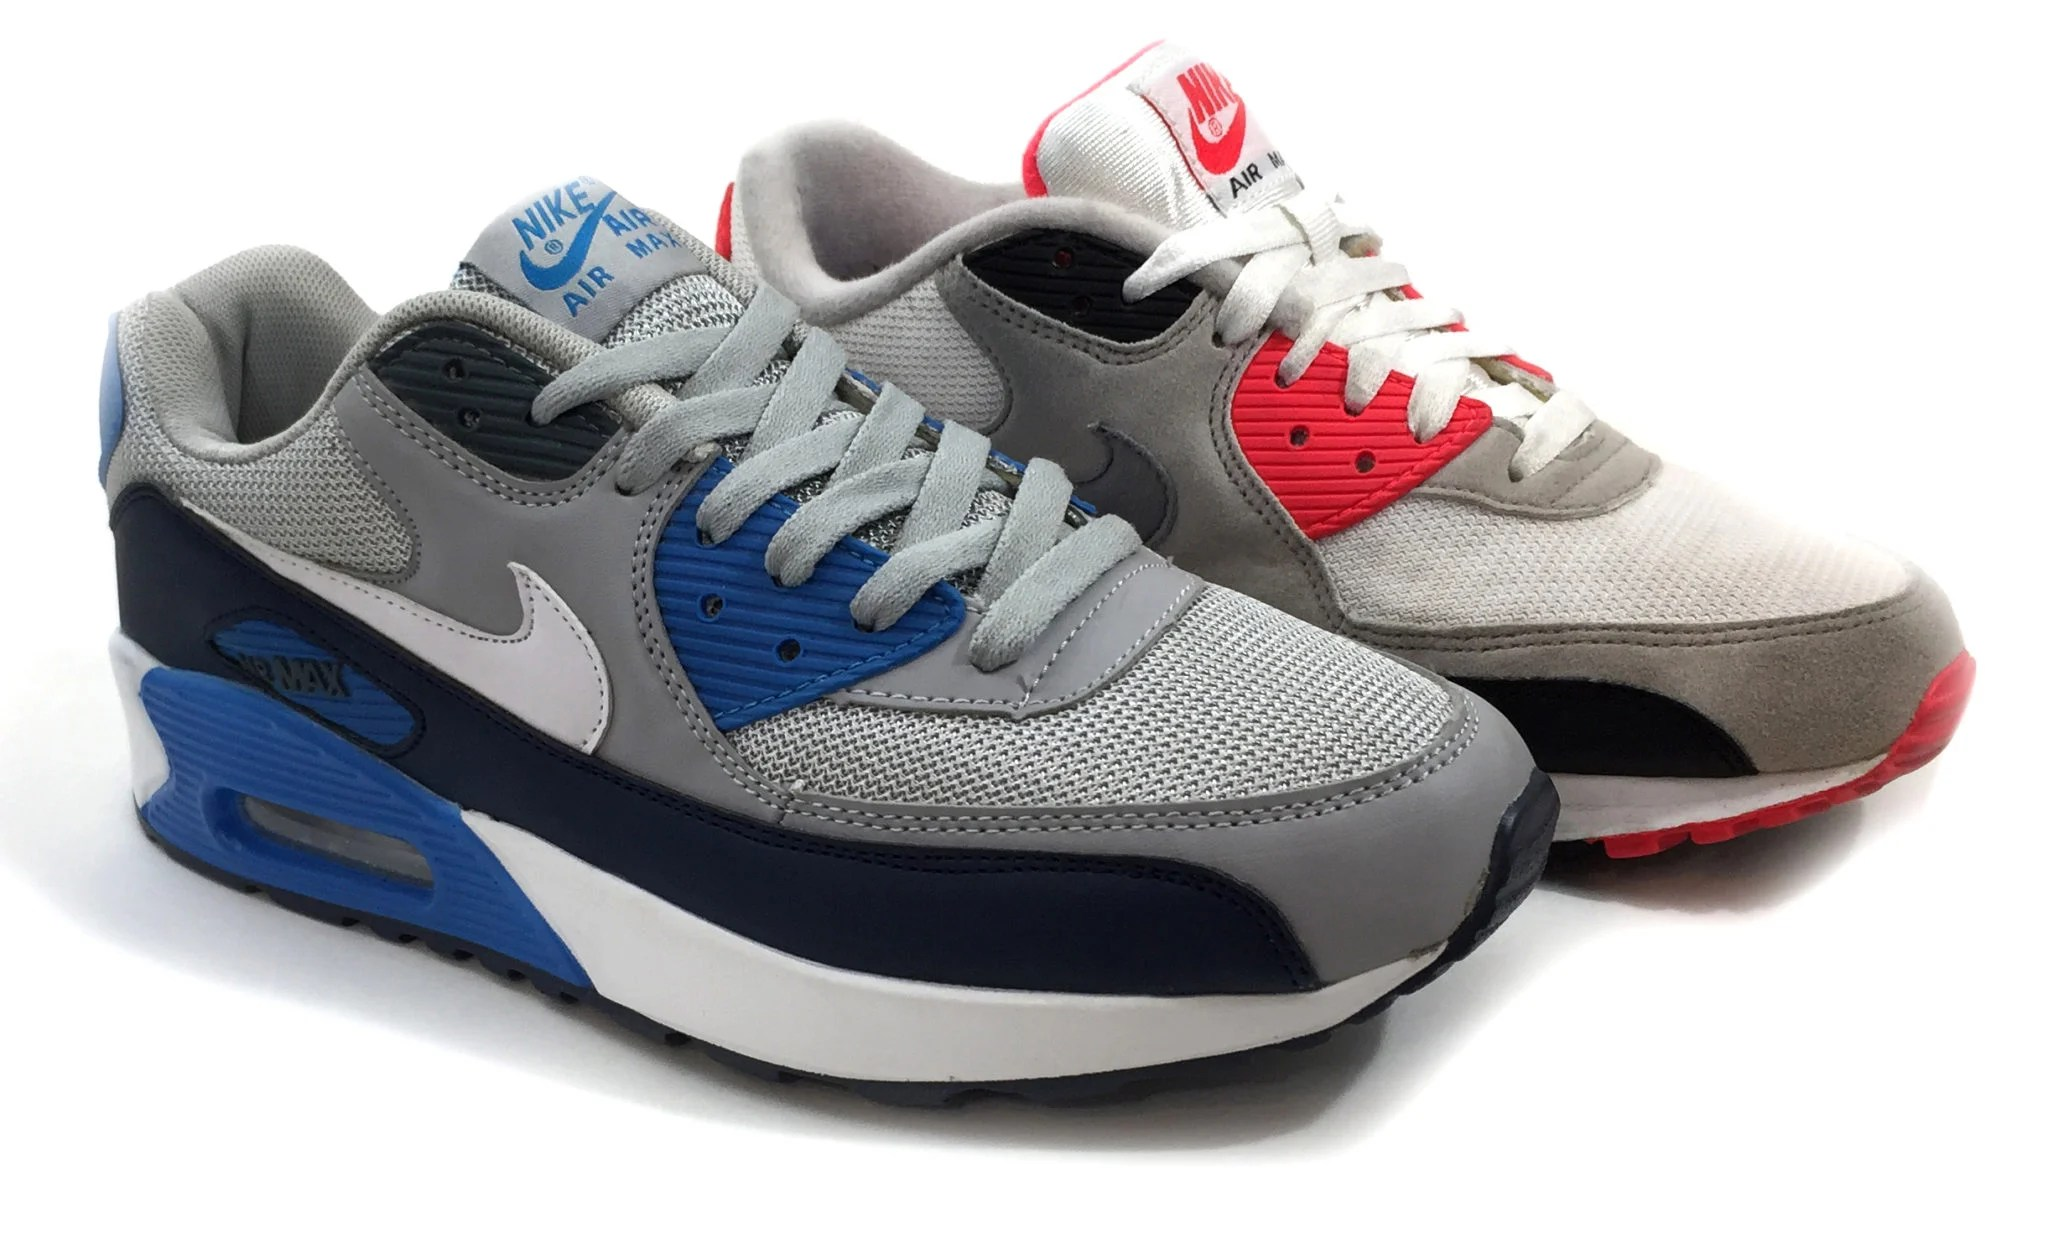 pase a ver Electropositivo yo lavo mi ropa  Nike Air Max 90 Counterfeit vs. Real - How do you know? SneakerFactory.net